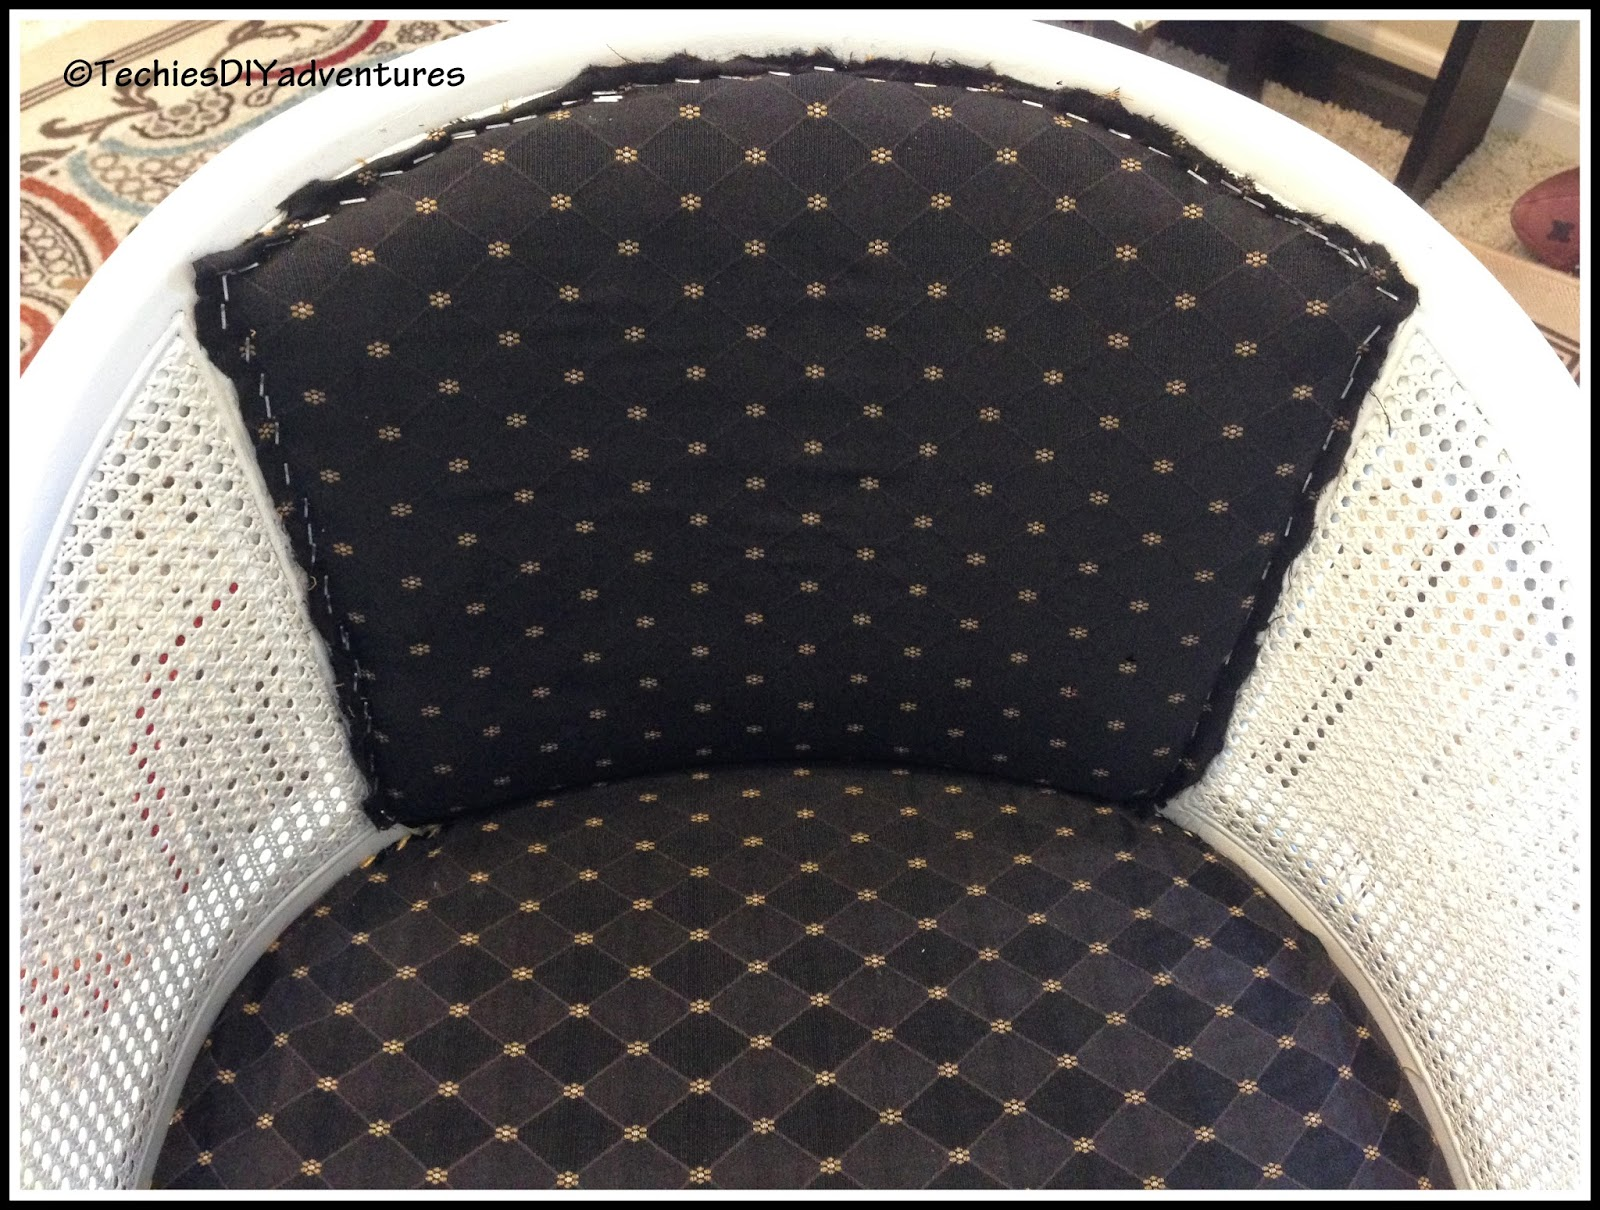 Cover The Staples With The Decorative Trim.I Used Hot Glue To Adhere The  Trim To The Chair. I Was Lucky To Find The Exact Same Trim That I Have Used  On ...